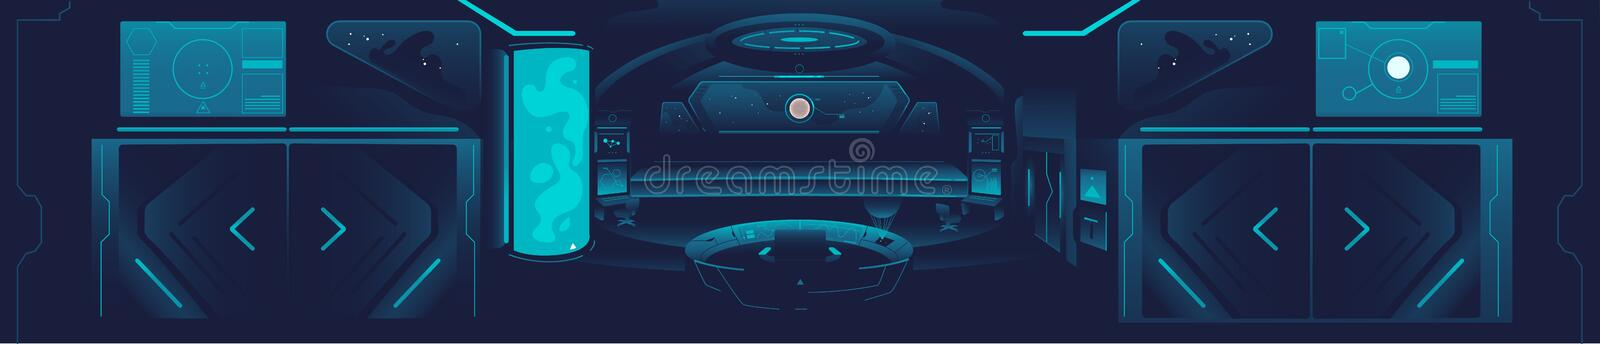 Spaceship banner - dark blue interor of space station with futuristic technology stock illustration